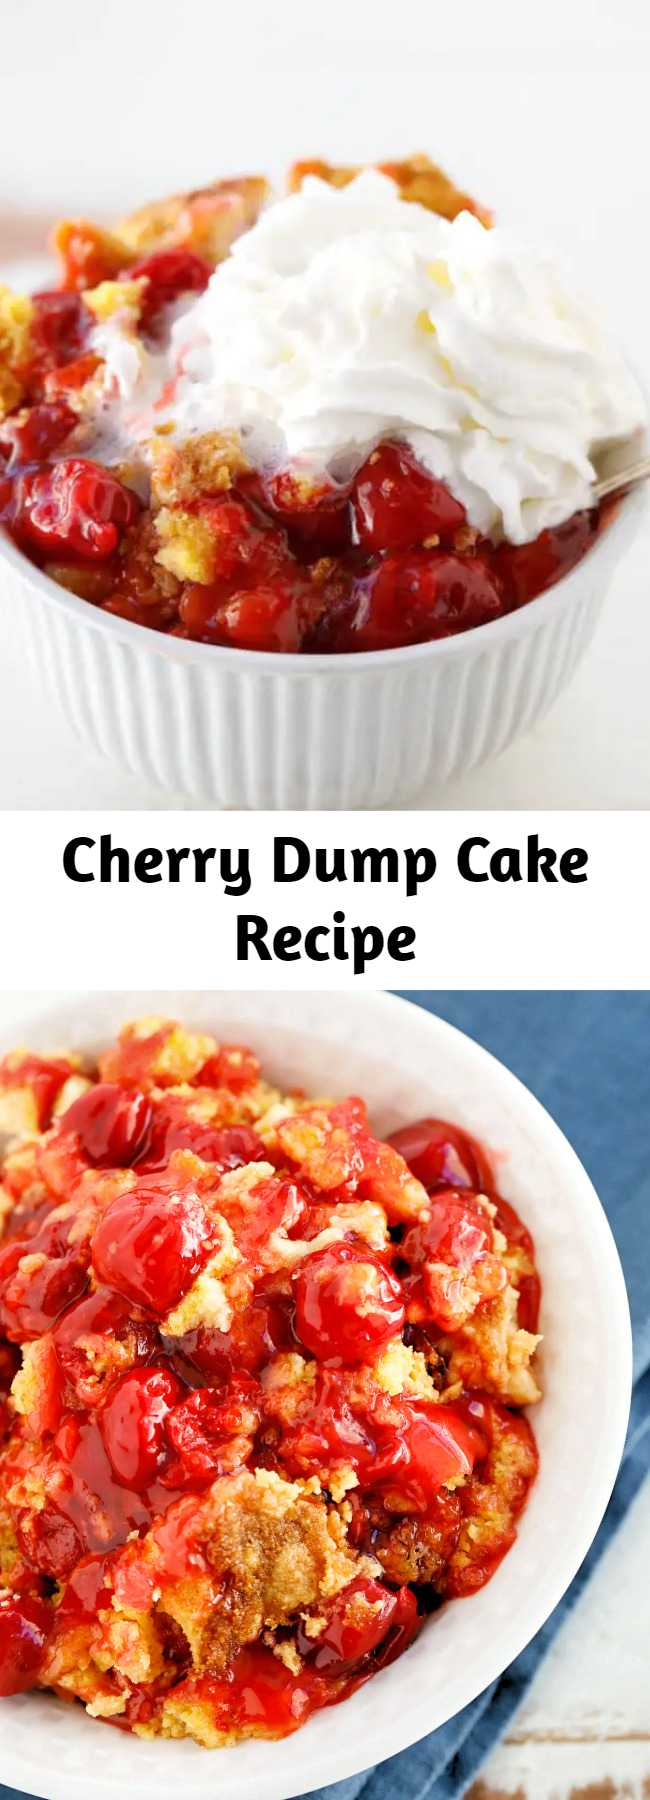 This sweet and delicious cherry dump cake recipe is the perfect simple dessert. Don't forget the scoop of ice cream or whipped cream on top! This is such a wonderful and easy dump cake recipe. I make it all the time! #Easy #Dessert #DumpCake #EasyRecipes